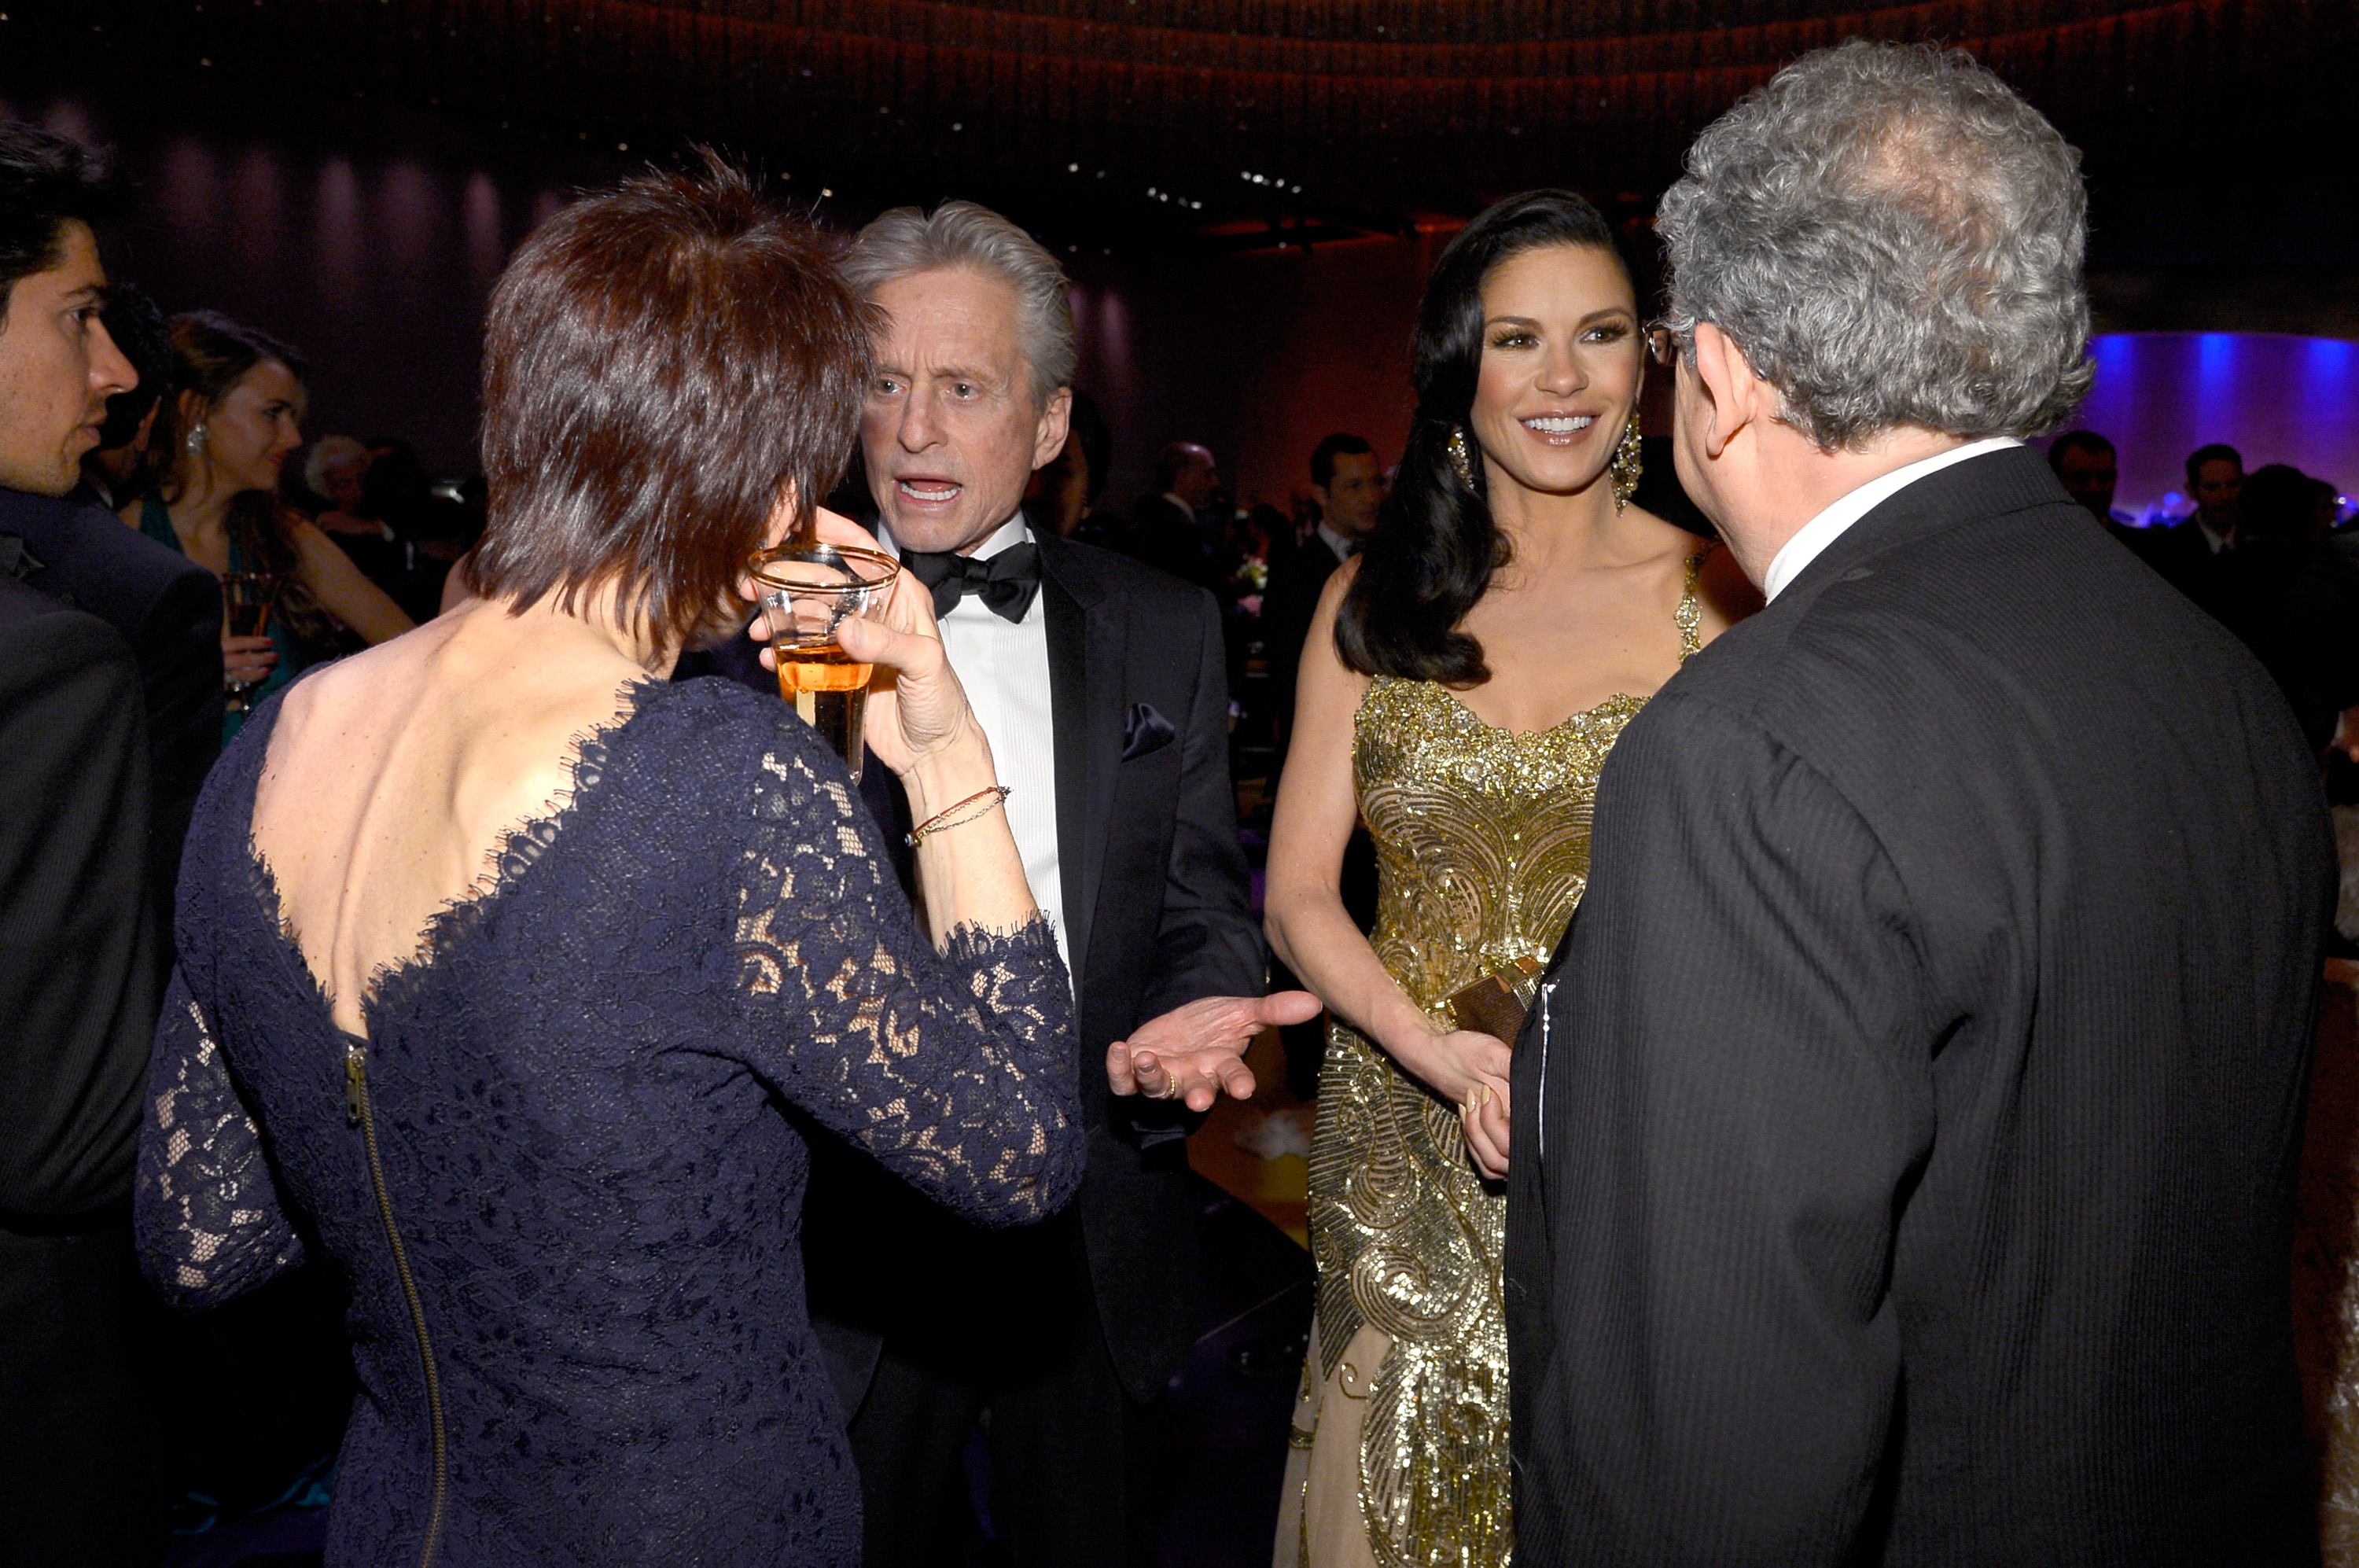 Michael Douglas and Catherine Zeta-Jones chatted with guests at the Governors B